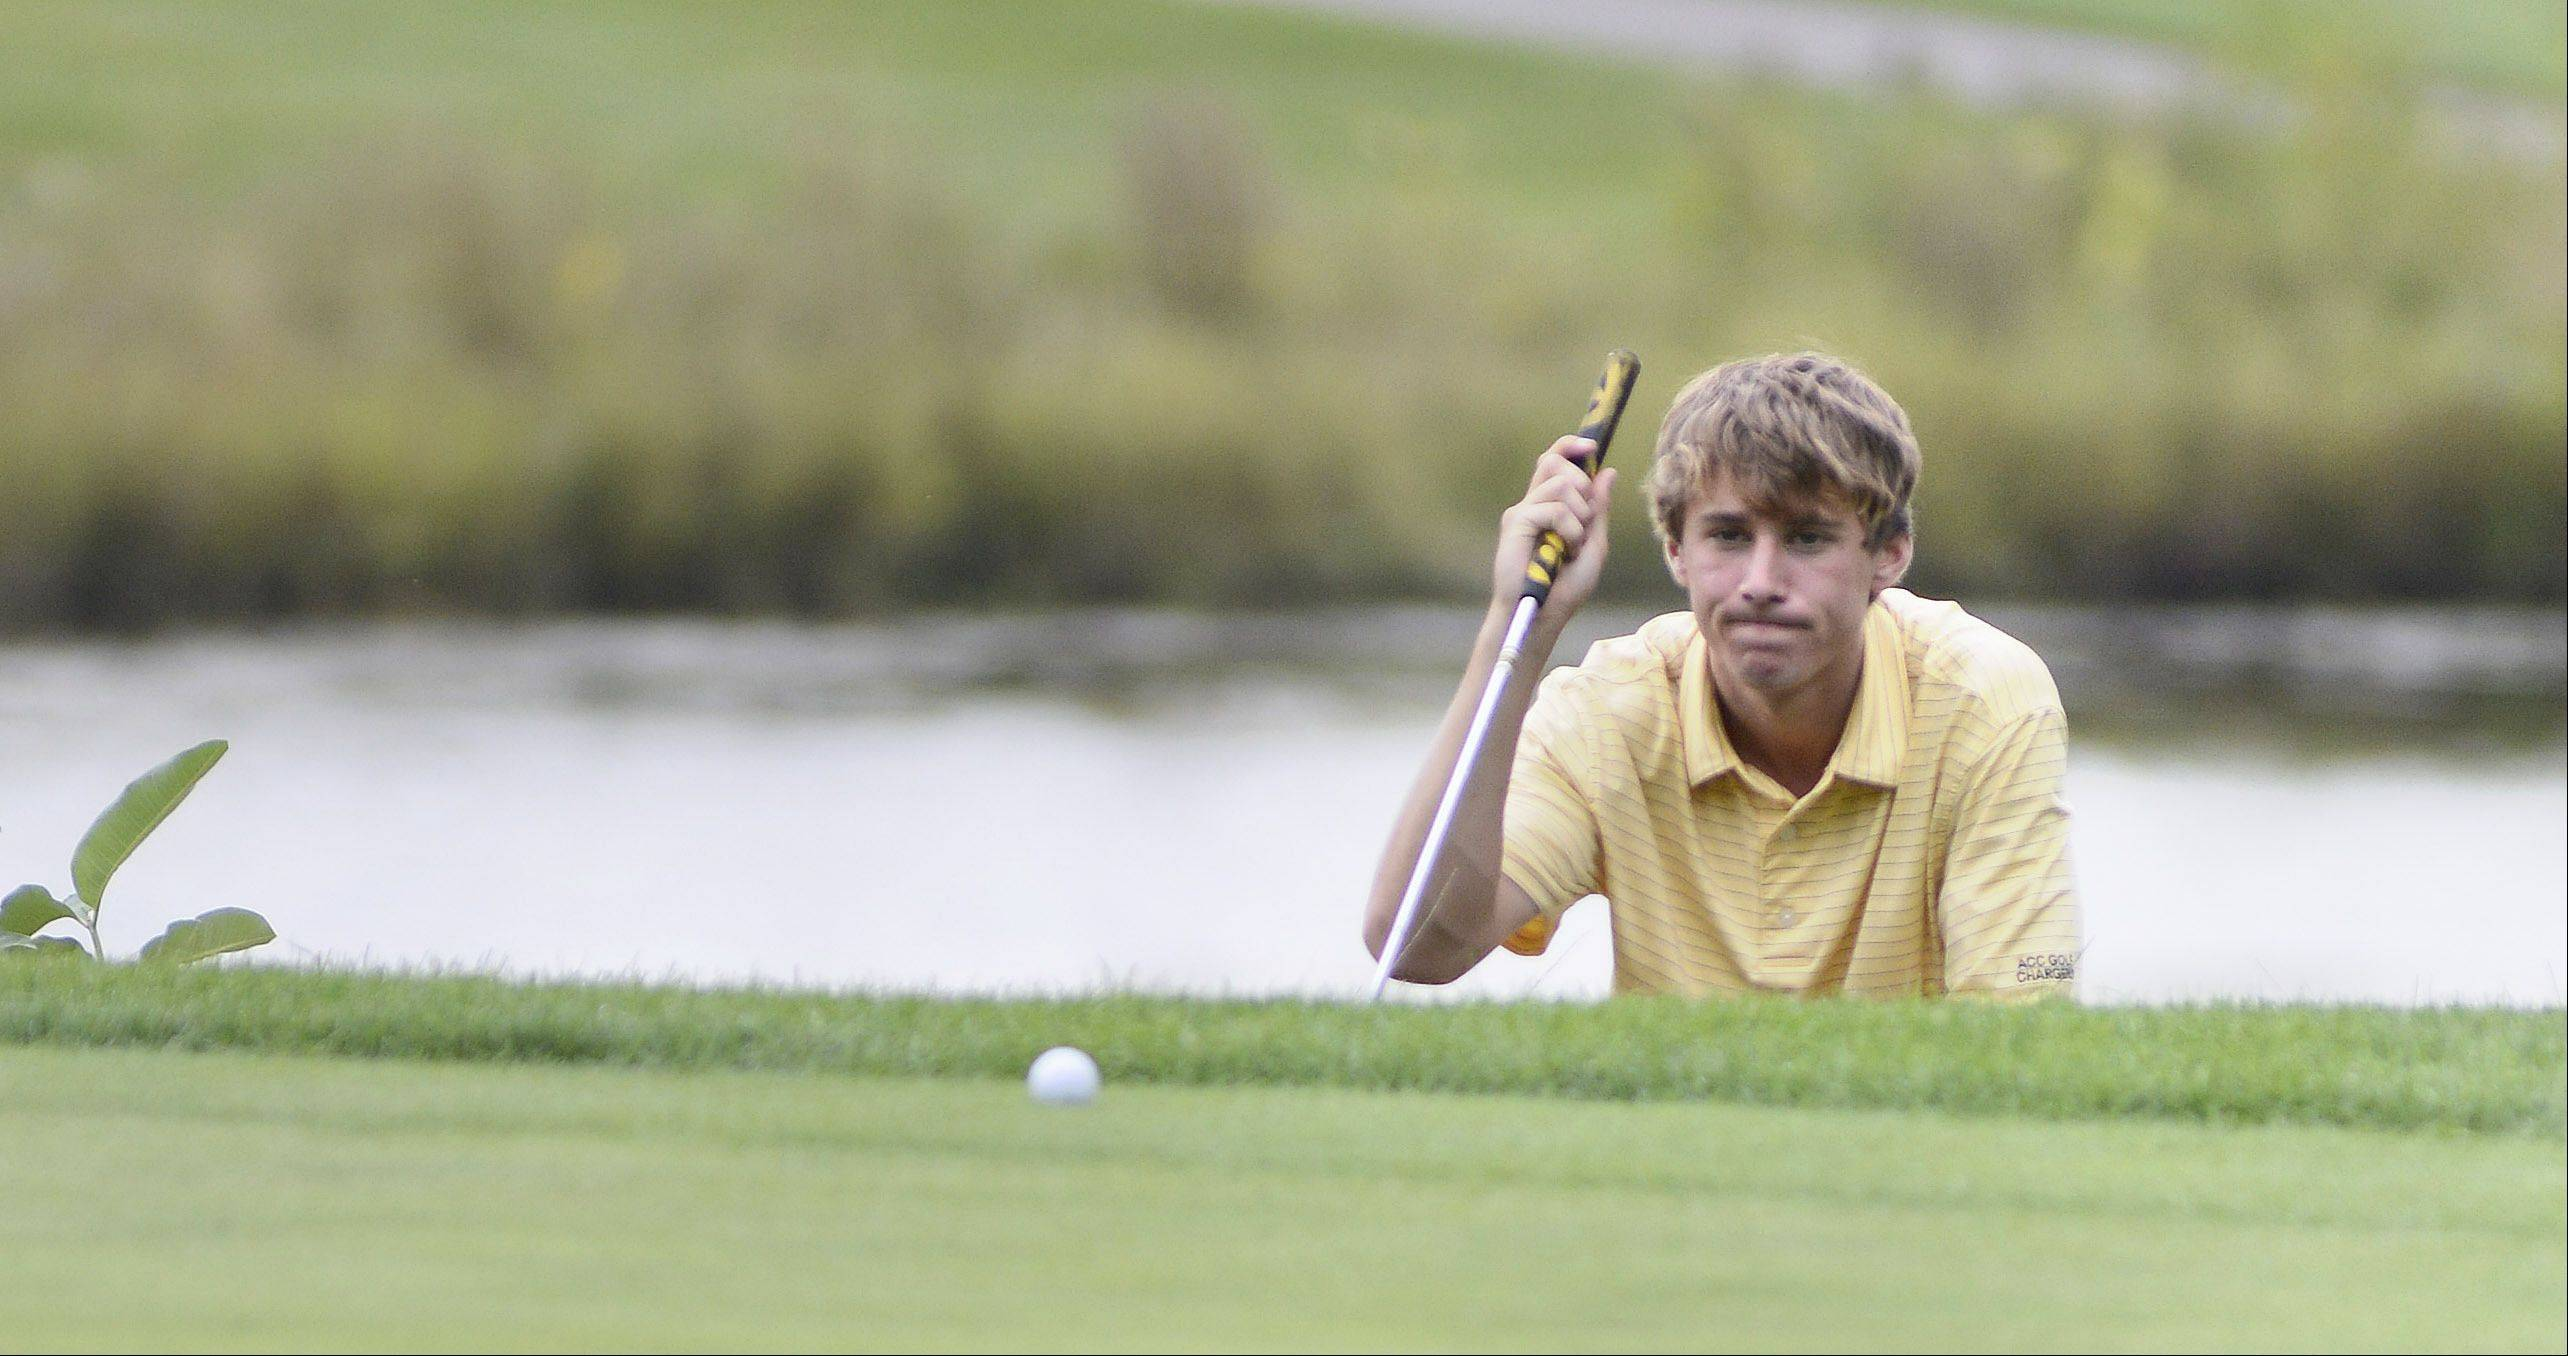 Aurora Central Catholic's Justin Prince judges his shot after hitting the ball out of the sand trap on the sixth hole at Phillips Park Golf Course in Aurora on Wednesday, September 18.